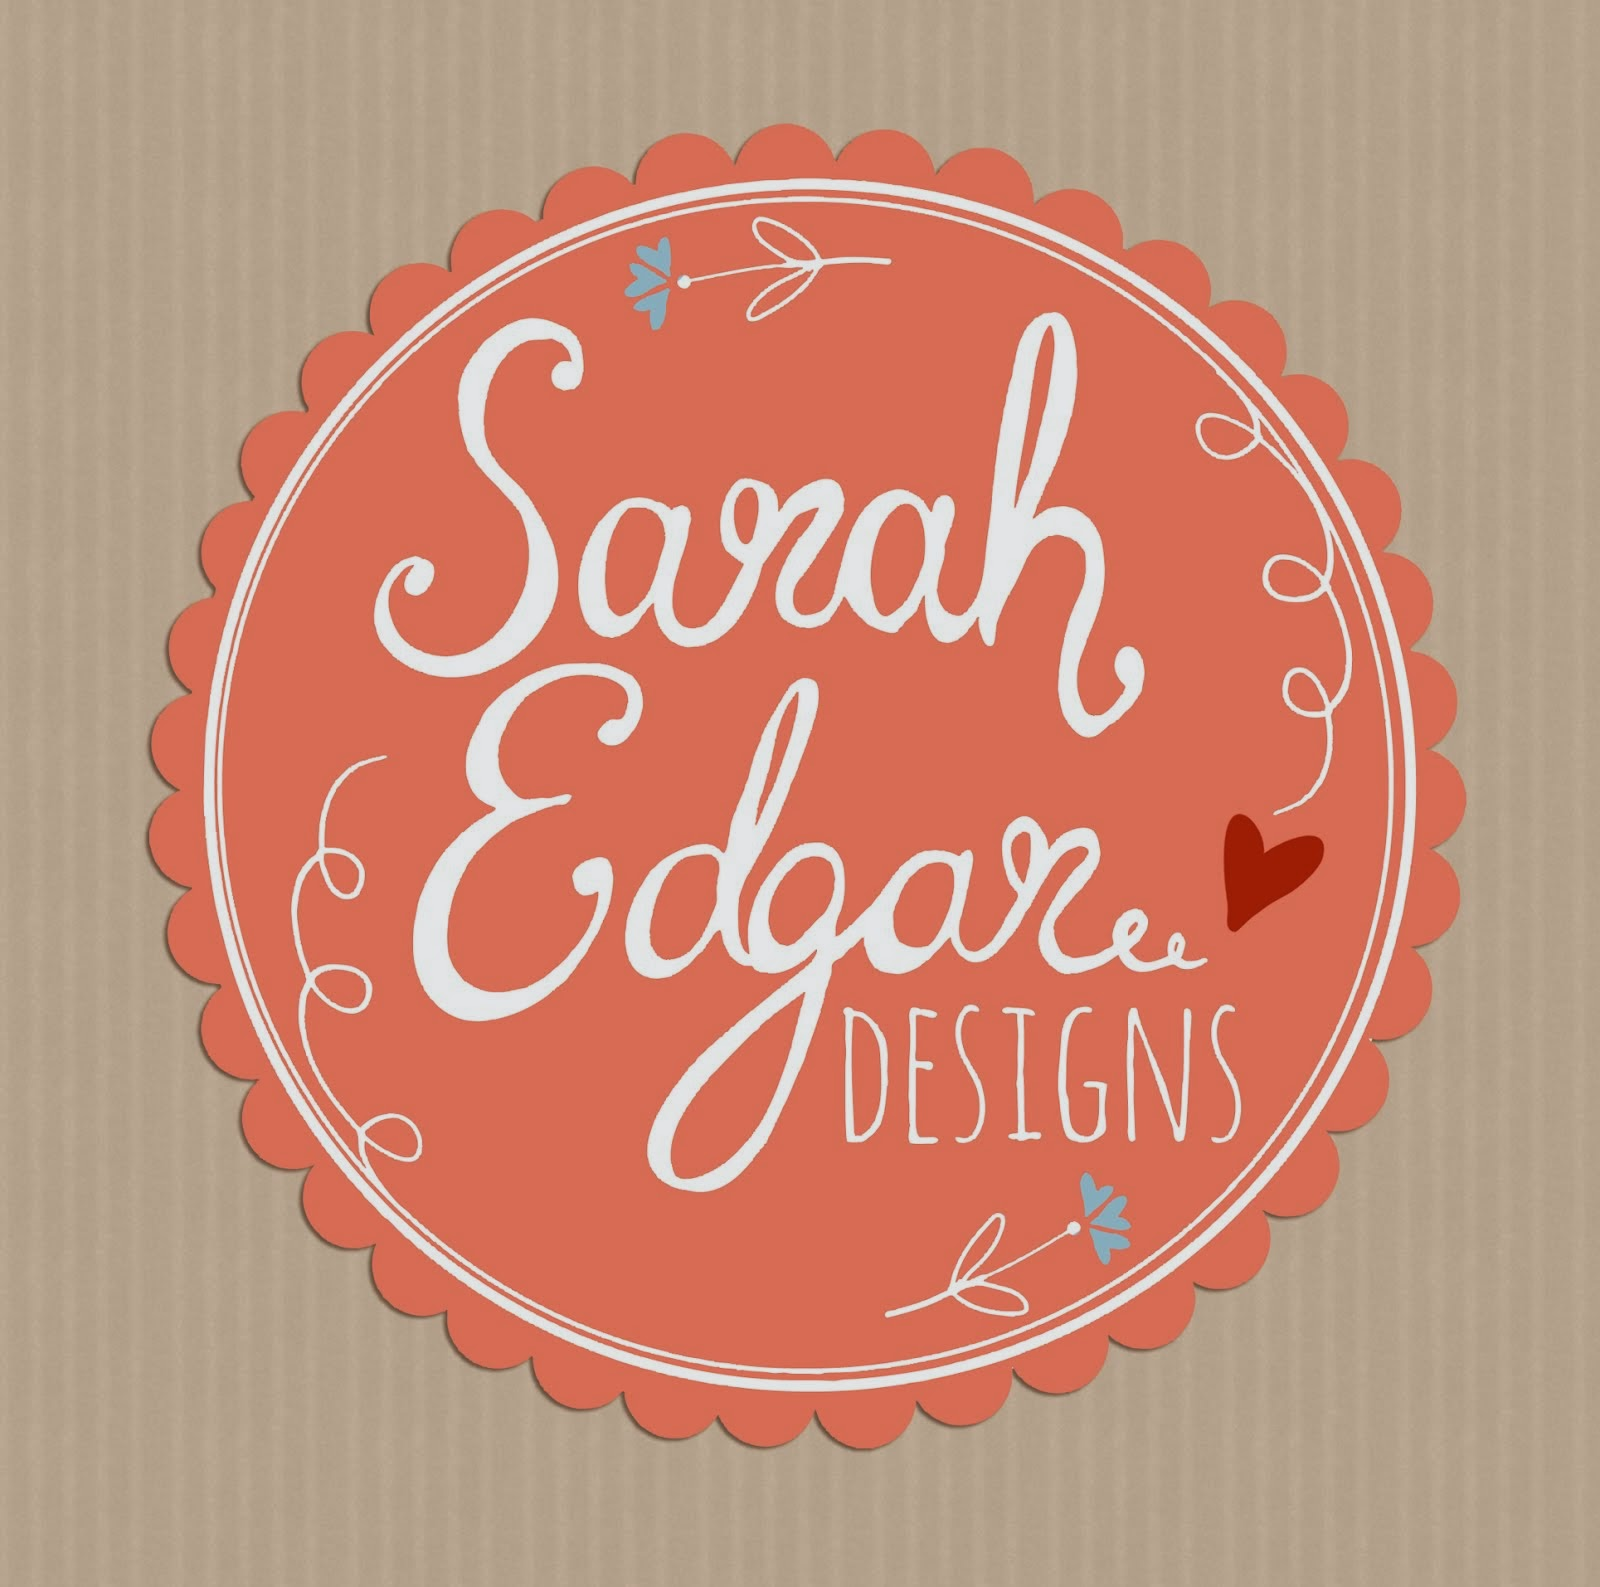 For behind the scenes, follow Sarah's Blog